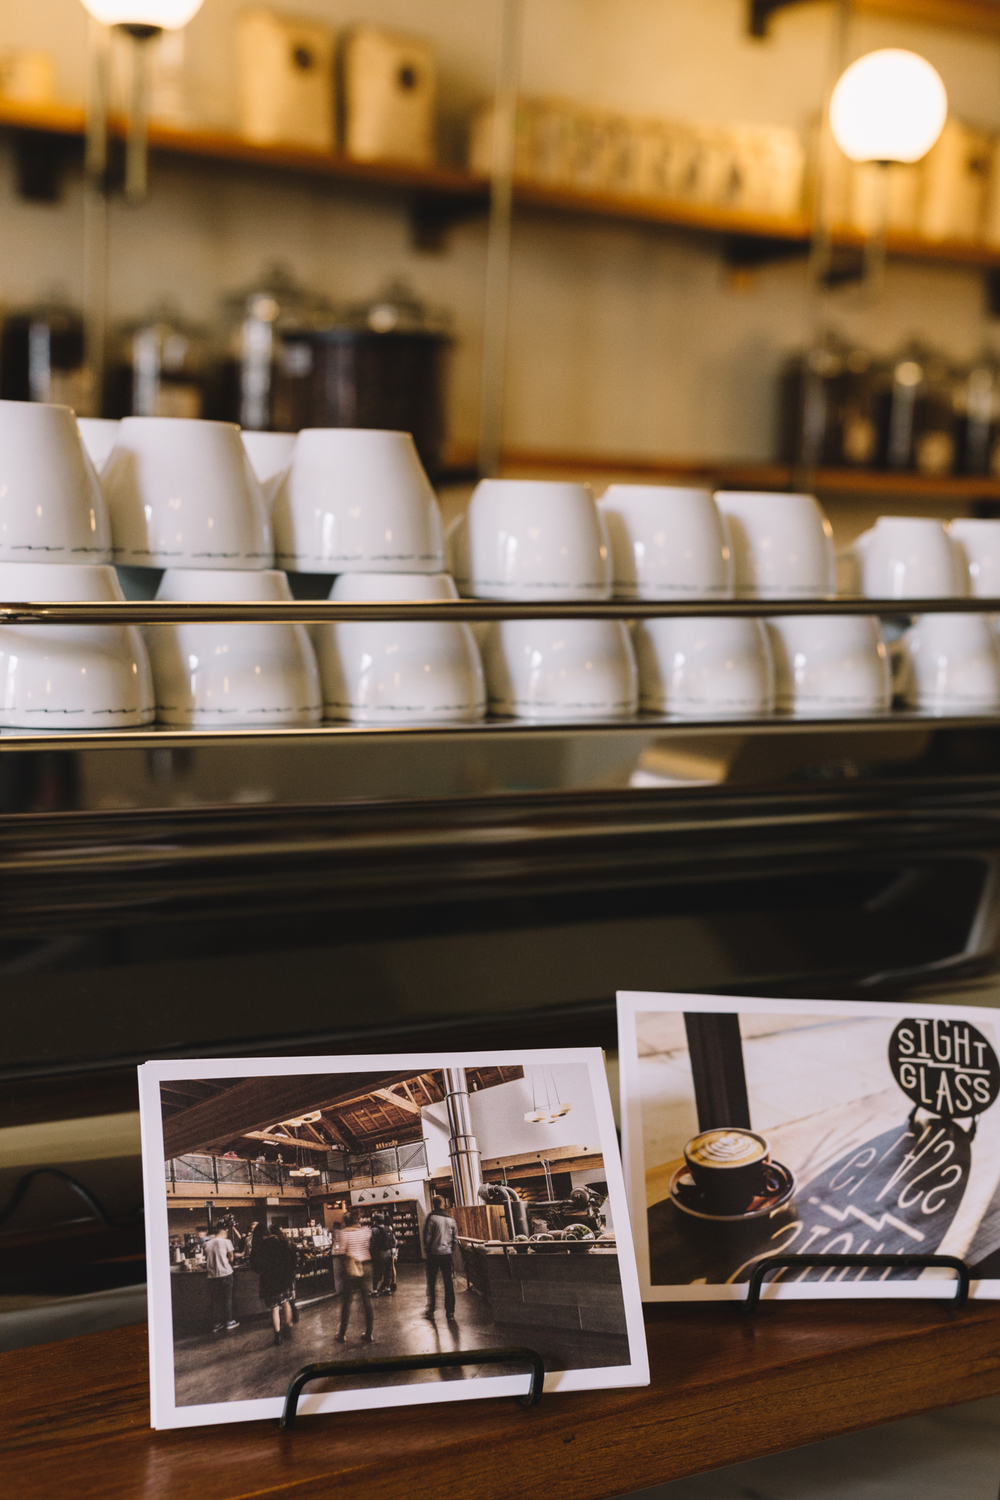 San Francisco Cafe Series: Sightglass Coffee, San Francisco, CA